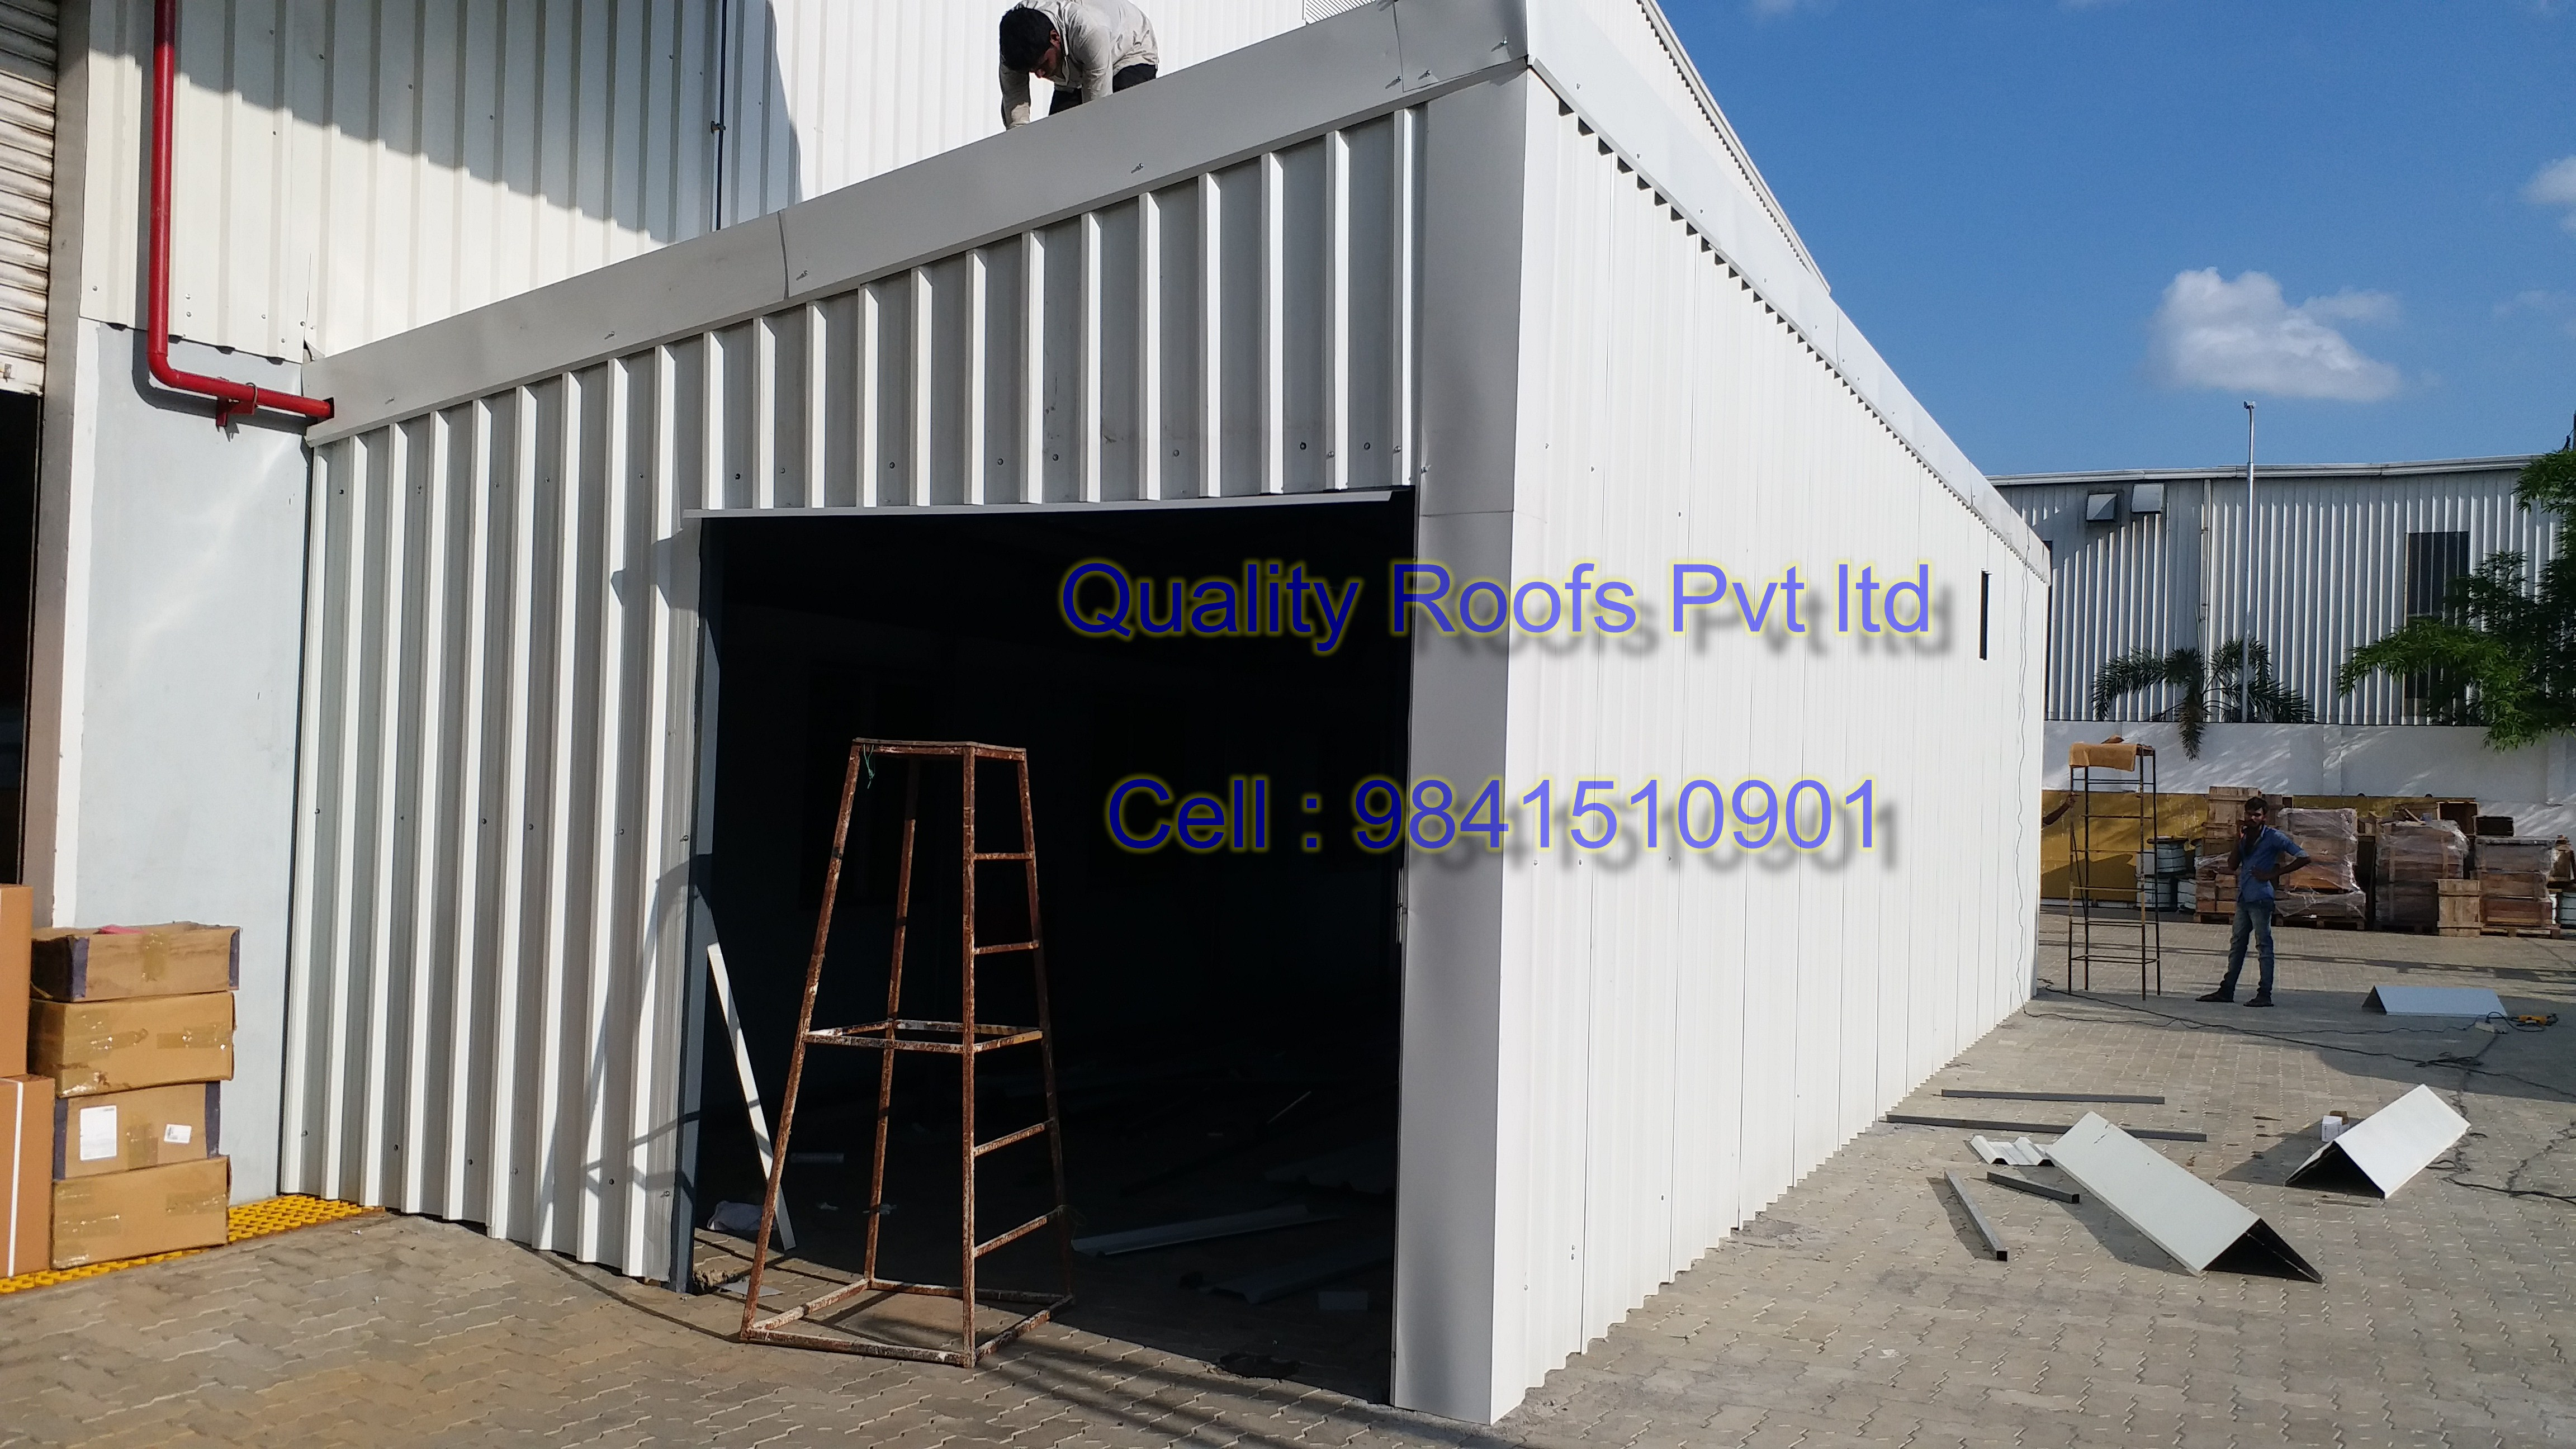 Quality Roofs Pvt Ltd, Metal Sheet Roofing Contractors In Chennai, Roof Sheet Work, Metal Roofing Installation Works, Low Cost Roofing Ideas, Factory Shed Roofing Solutions